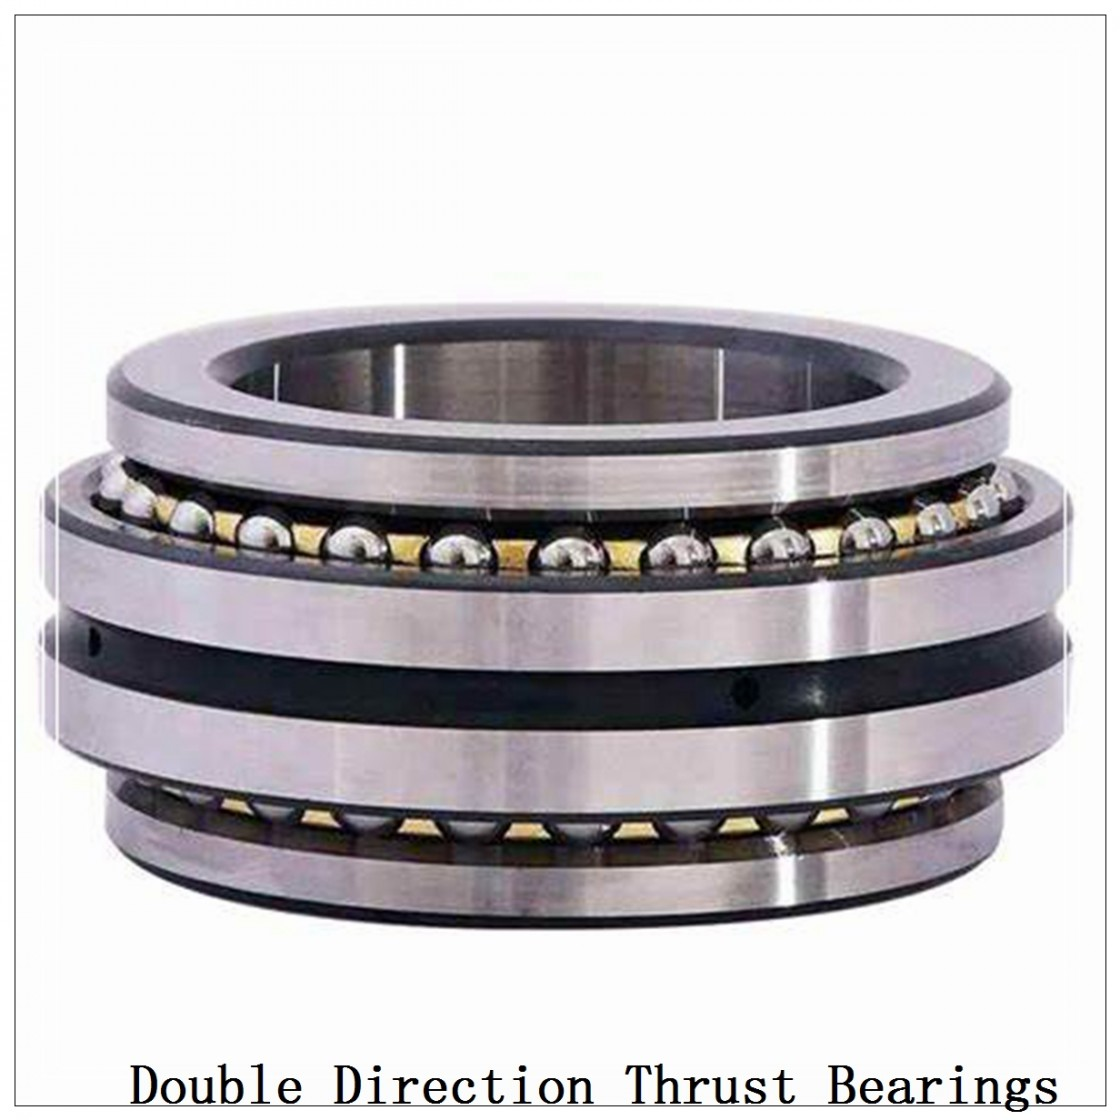 353005 Double direction thrust bearings